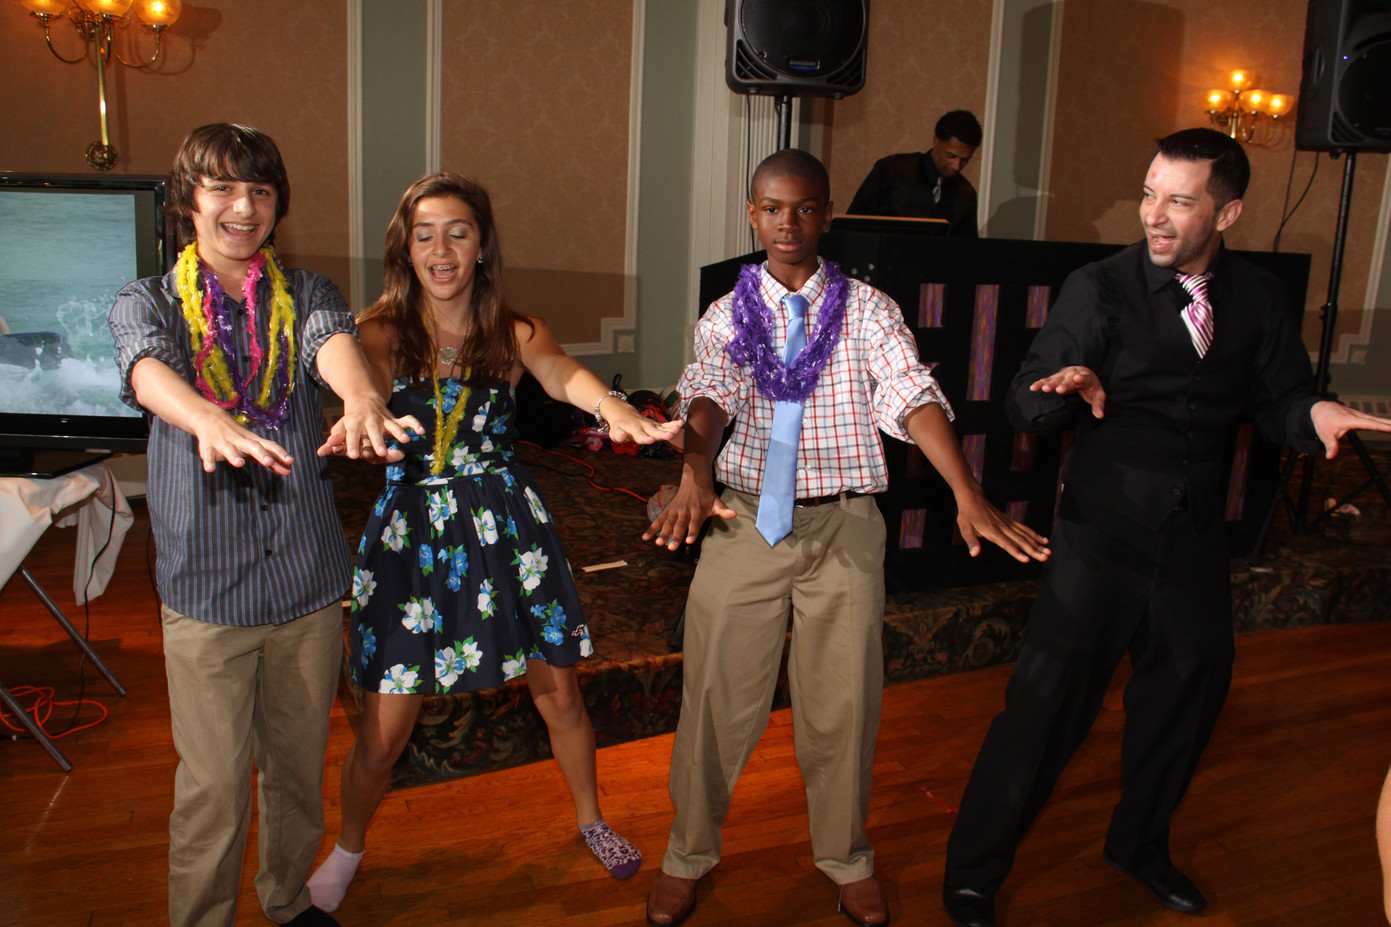 Professional-Mc-Dancing-With-Guest.JPG